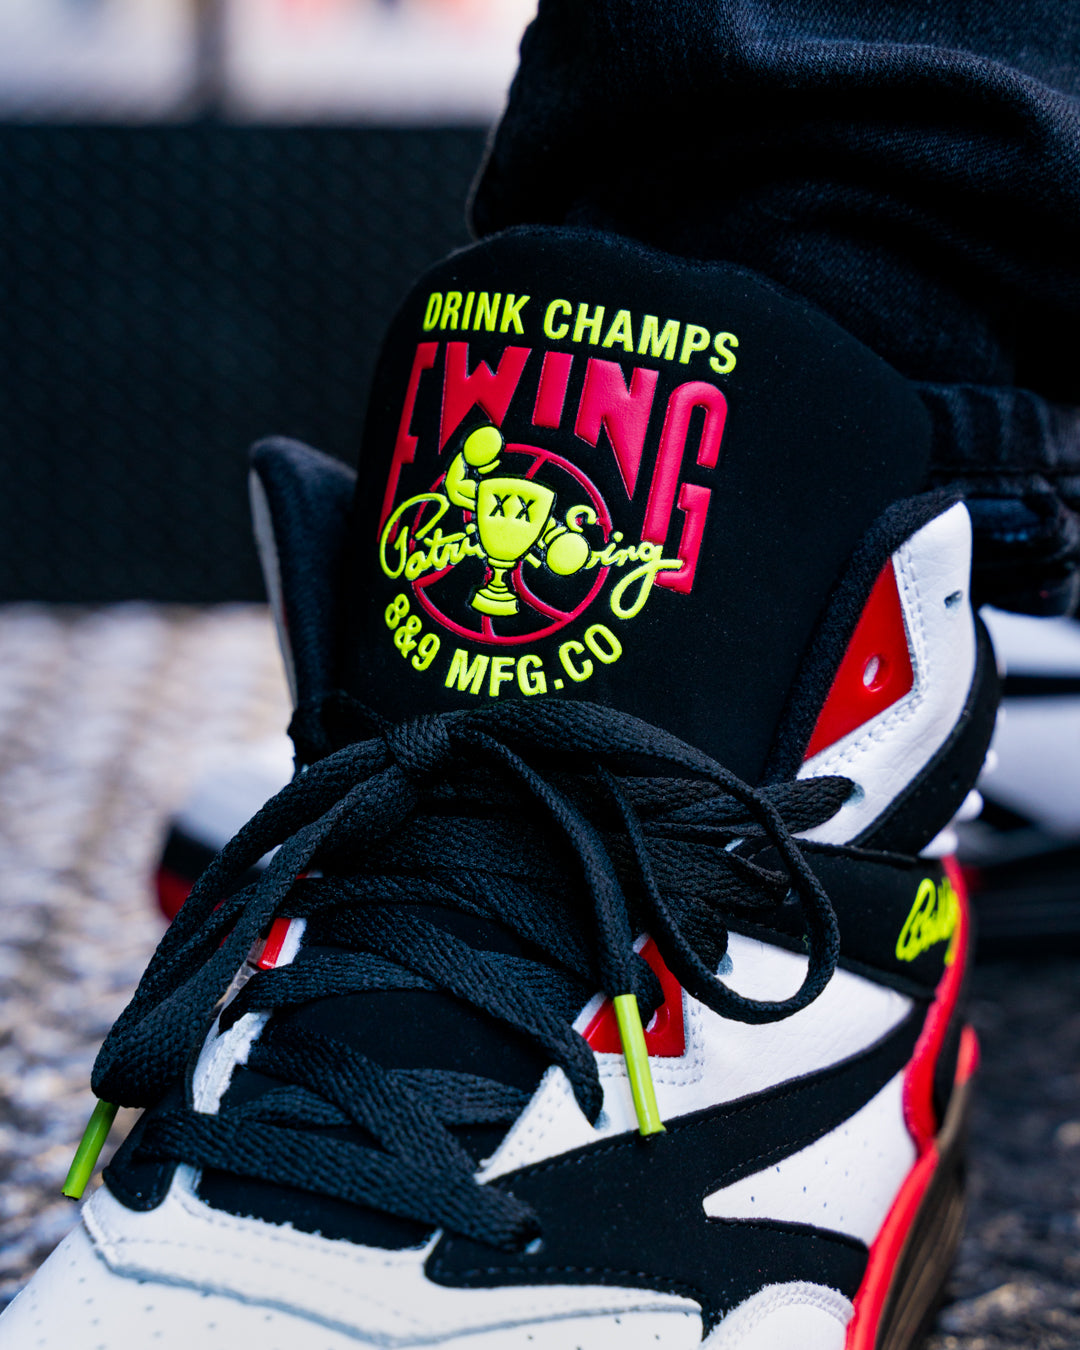 Drink Champs Ewing Sport Lite tongue